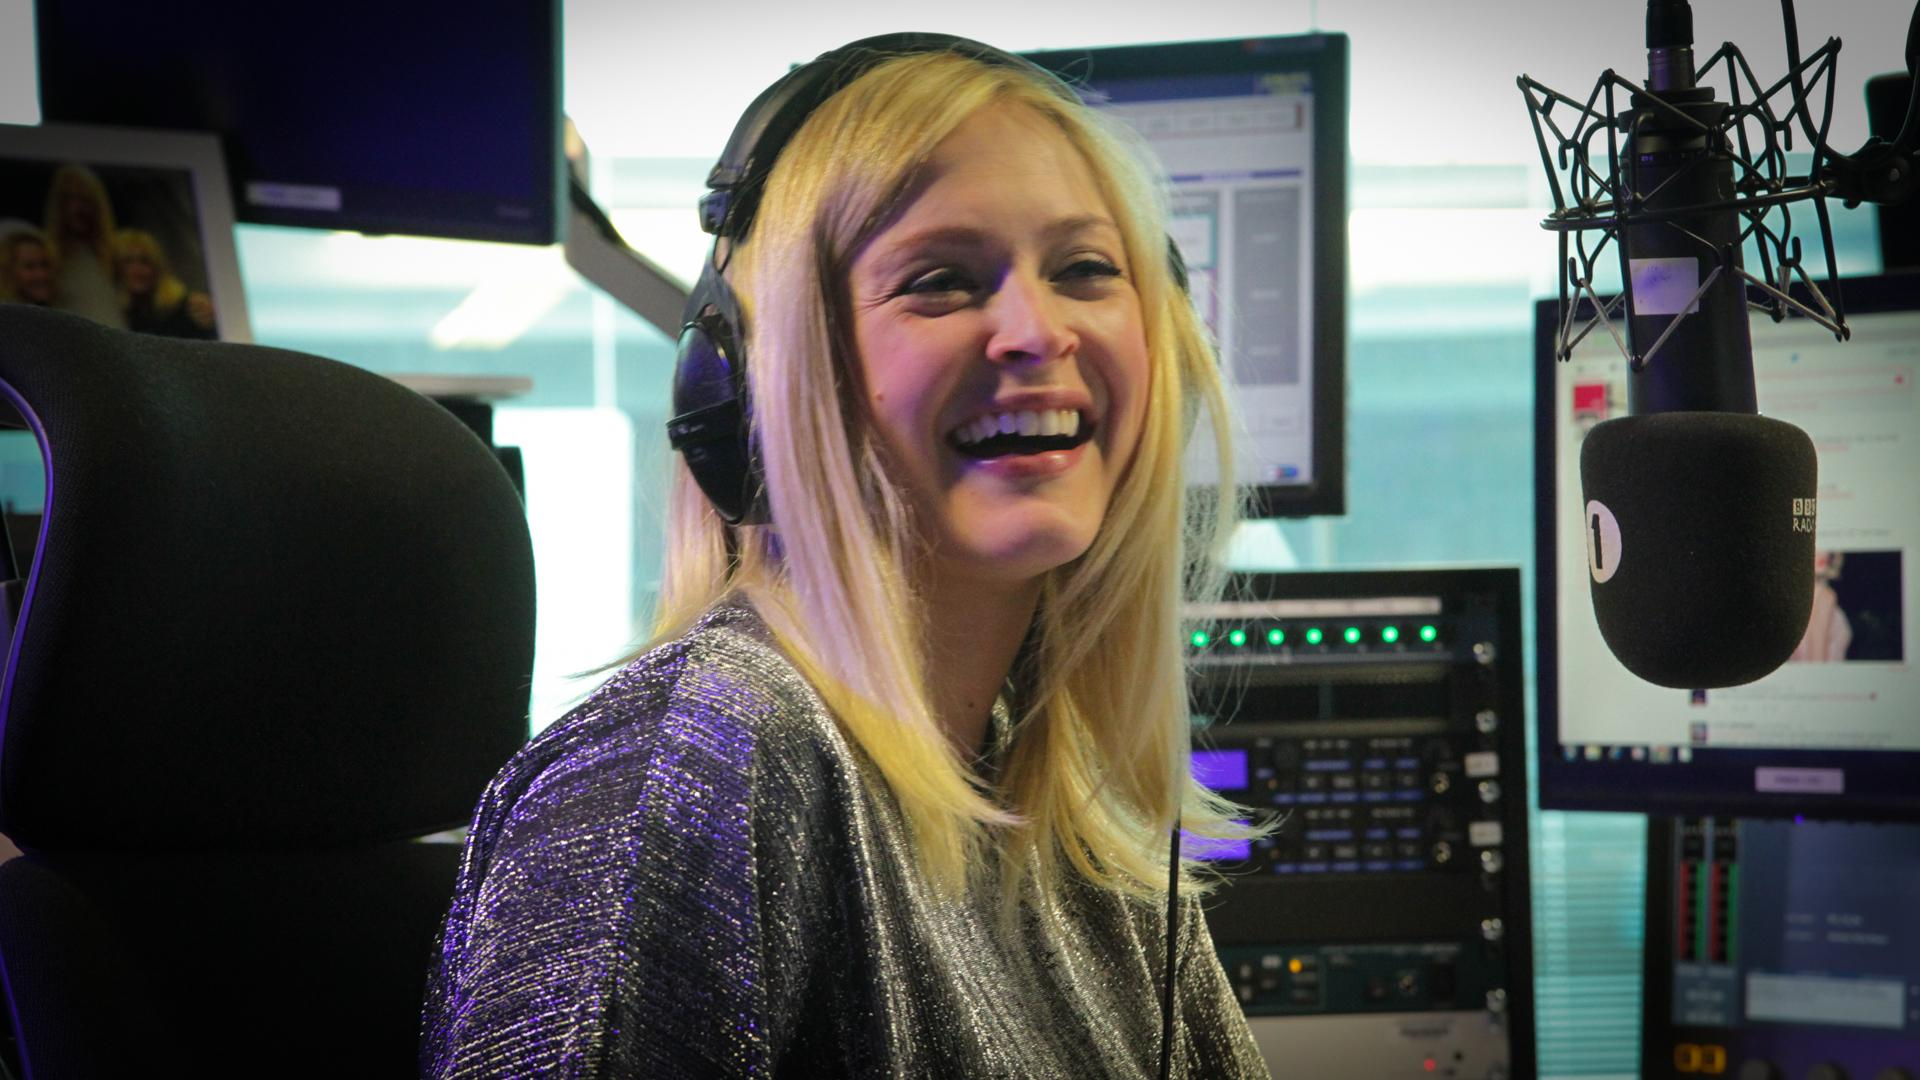 RT @BBCR1: Listen to ALL the songs recorded especially for @FearneCotton's last show on Radio 1 here: http://t.co/pm3uHvKnBh http://t.co/LC…